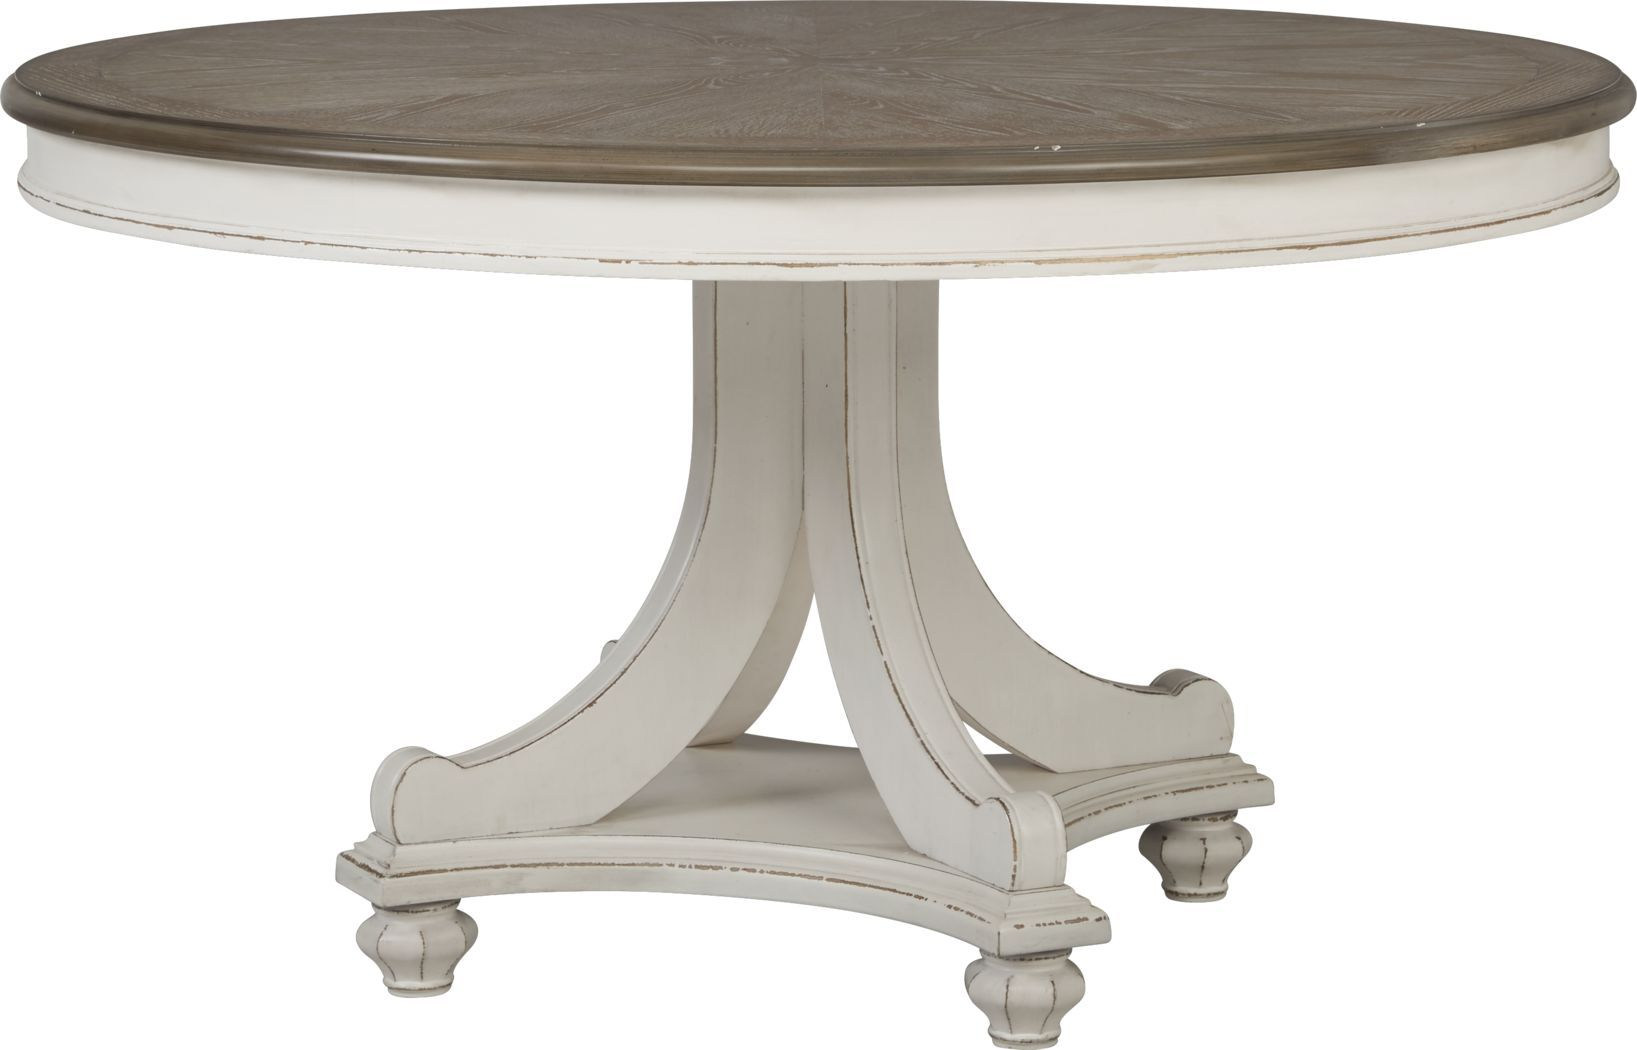 French Market White Round Dining Table White Round Dining Table